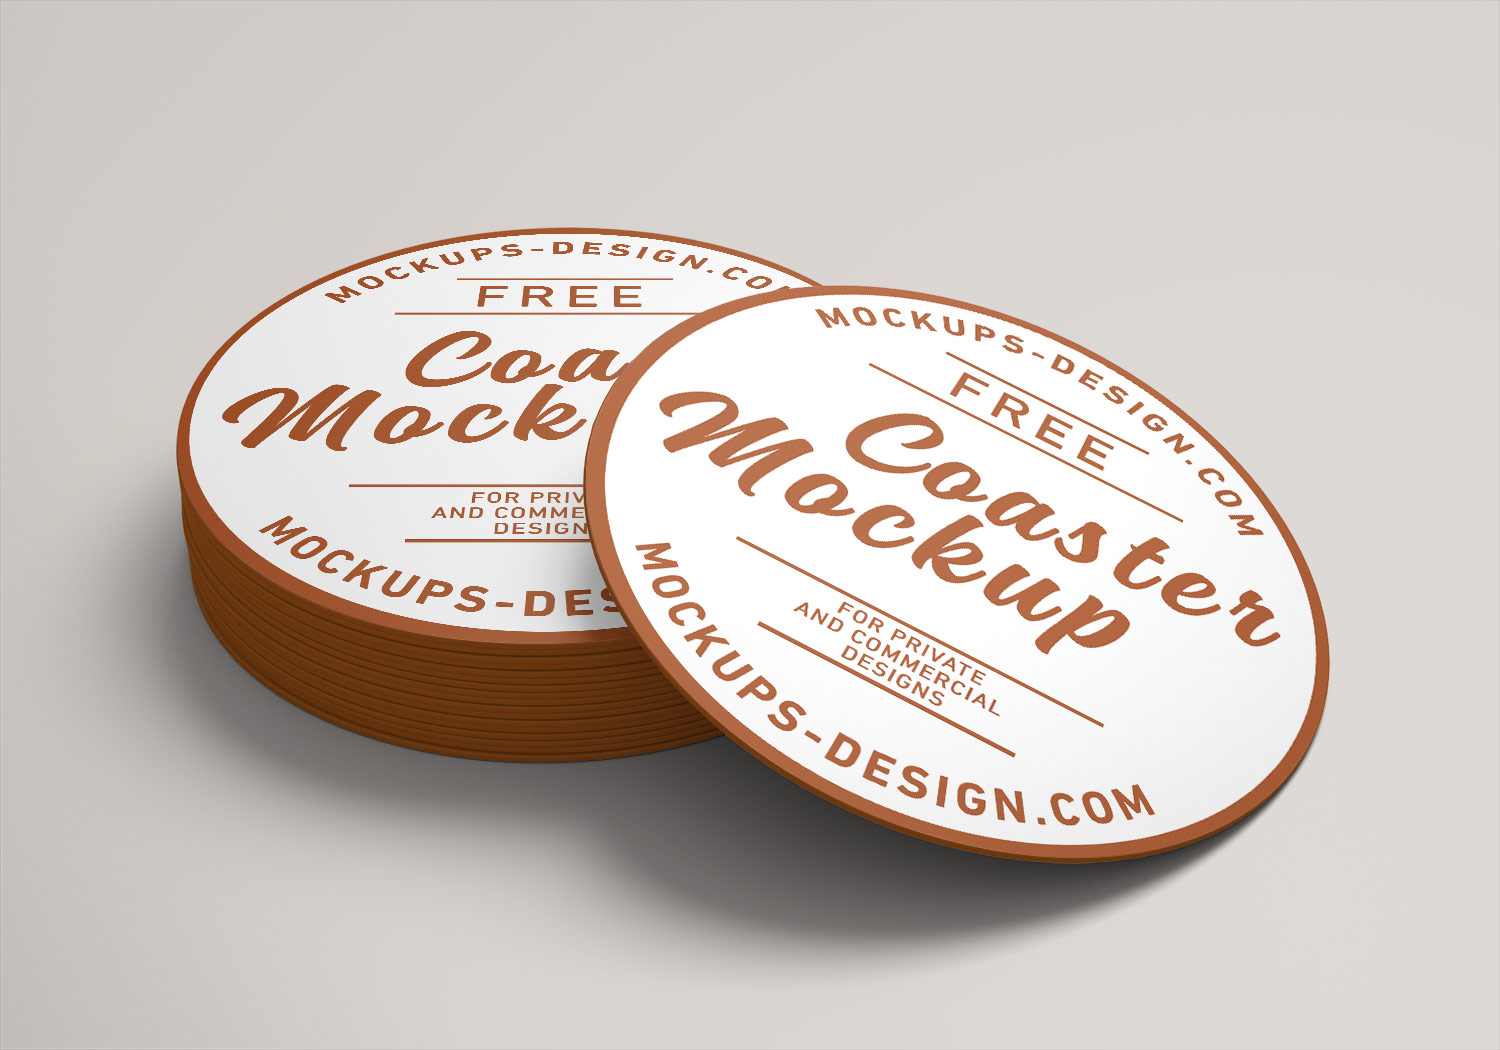 Round Drink Beverages Coaster Mockup PSD